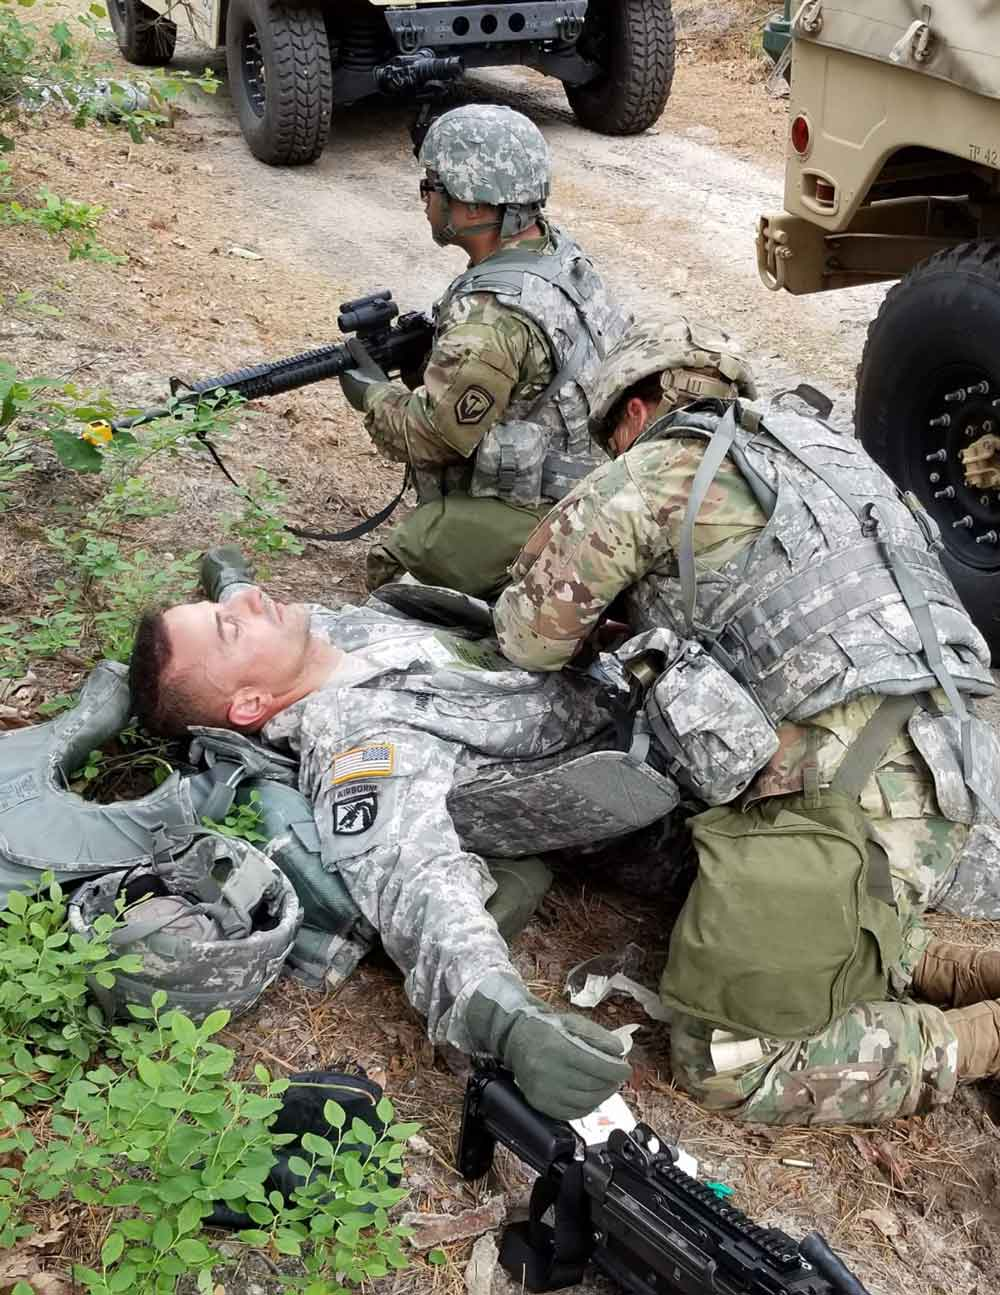 SSG Bryn Mandl conducts a mock medical evacuation on SFC Roberto Ramos, while PFC Alfonso Alicia provides cover as part of a training simulation during the 350th Financial Management Support Detachment's mobilization exercise.